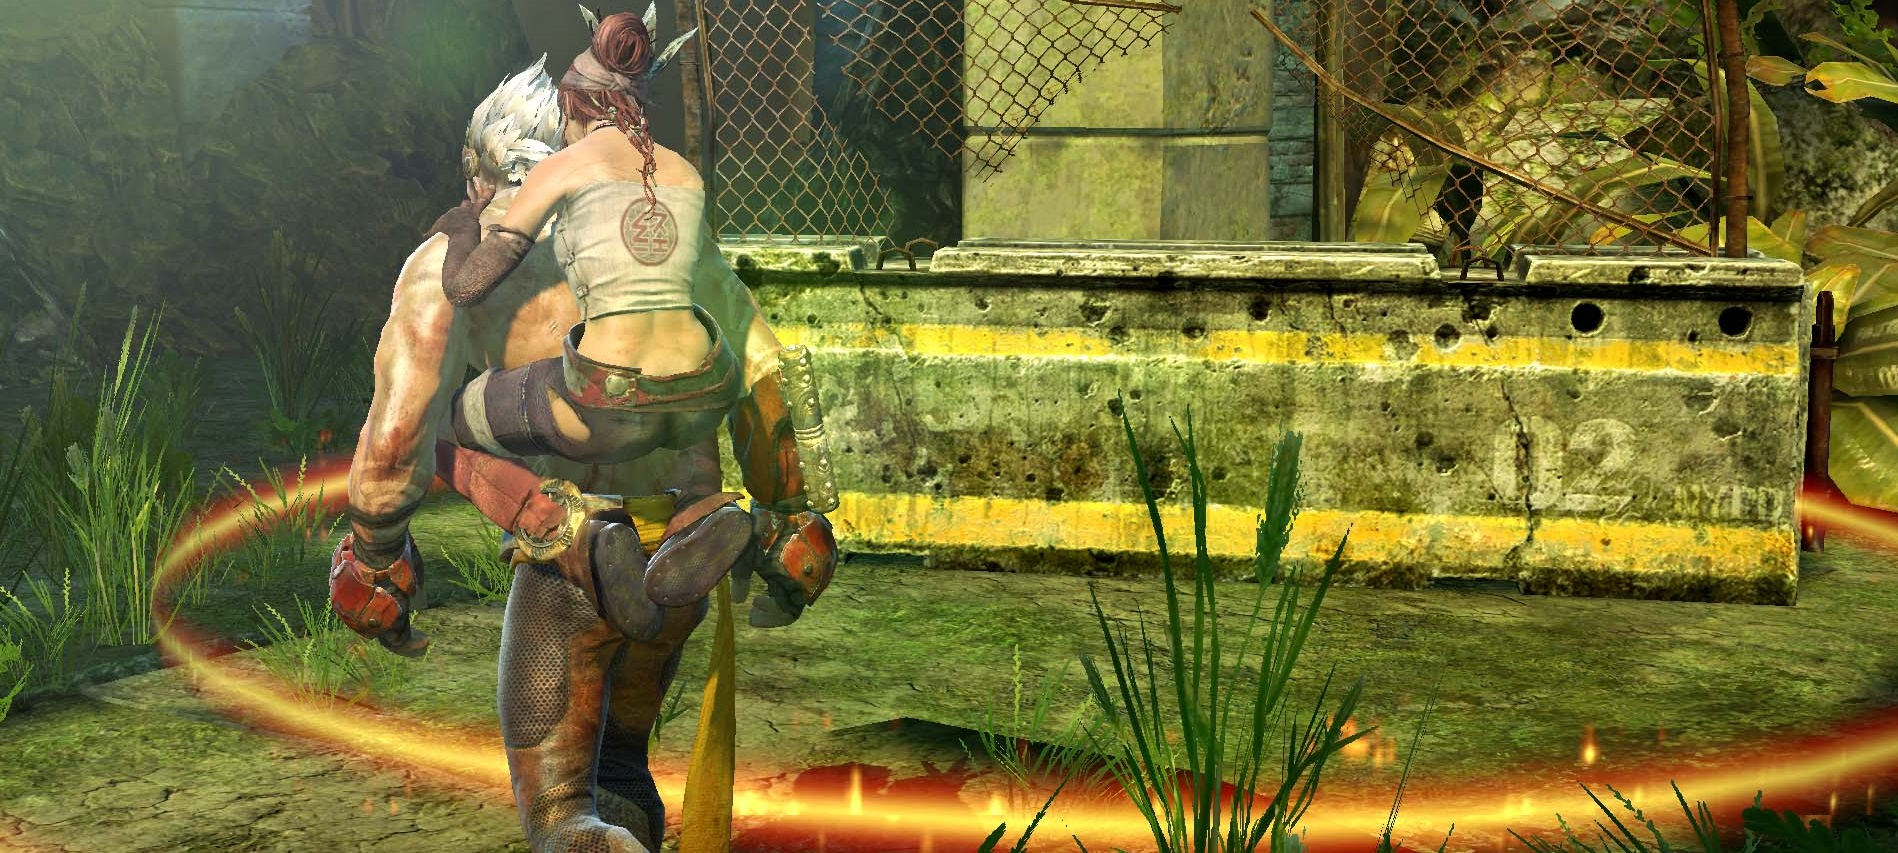 Enslaved odyssey to the west porn sexy photos